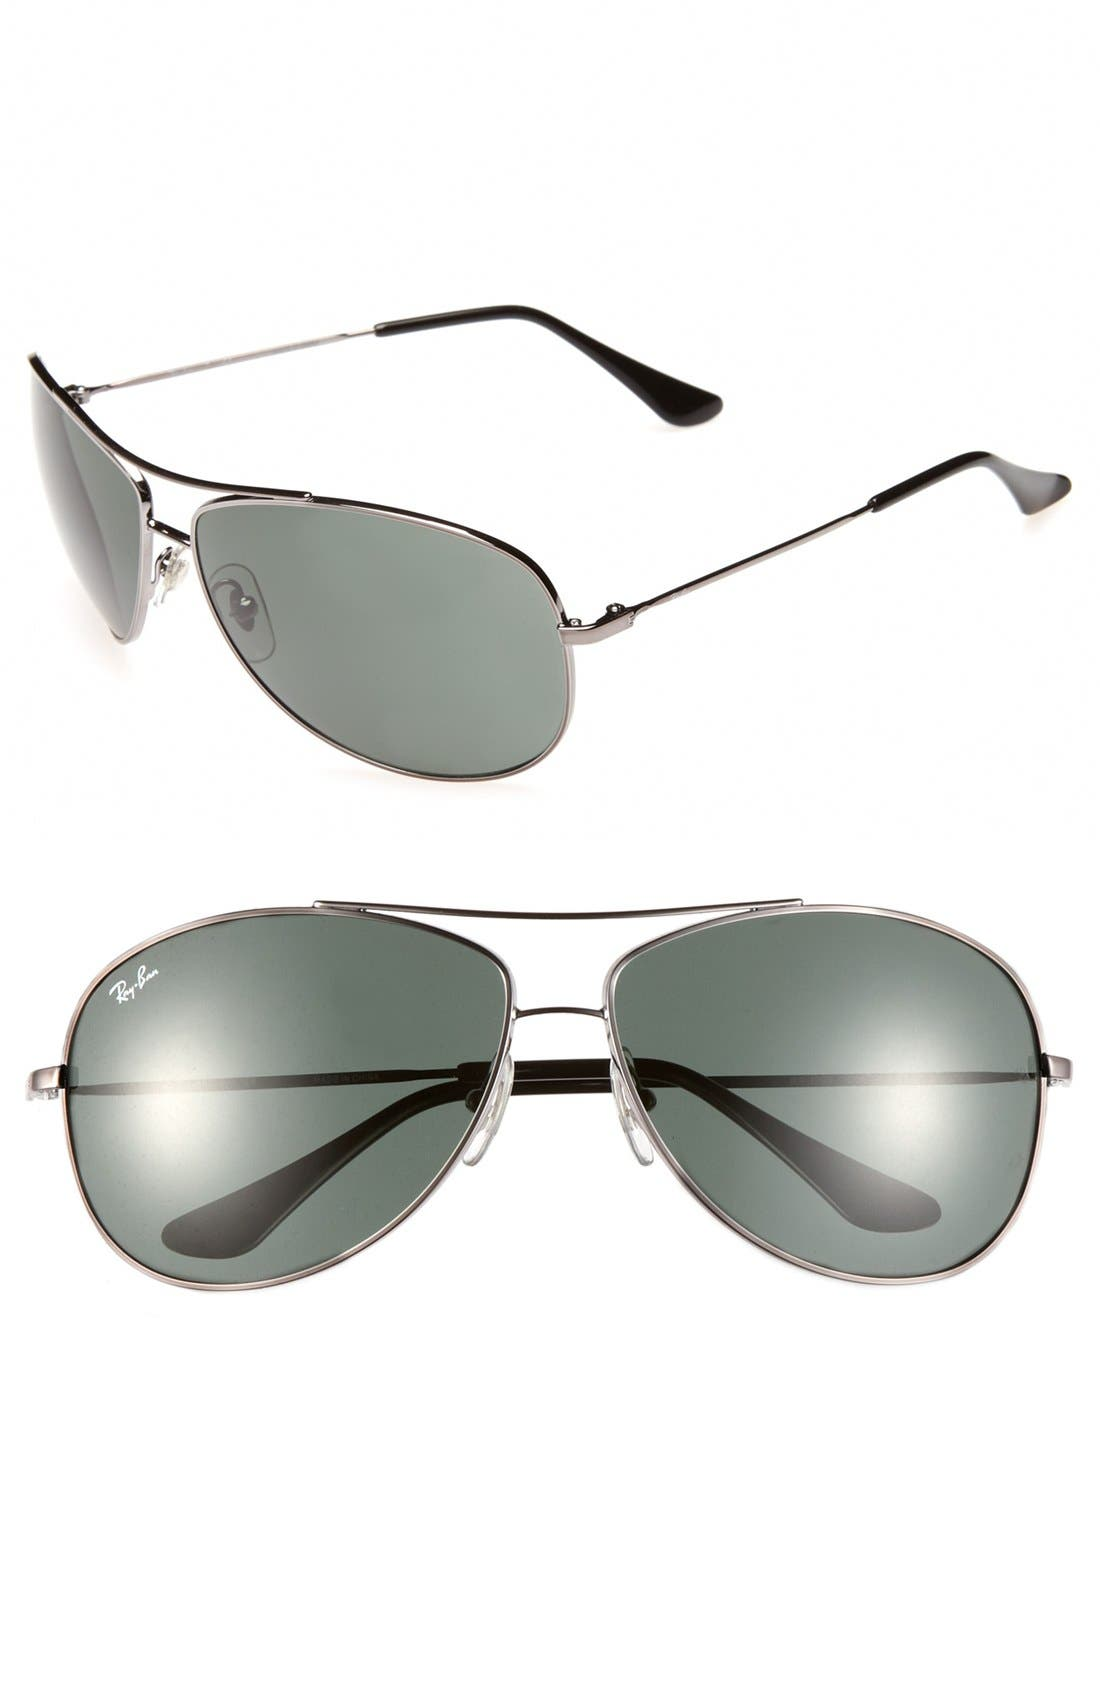 Alternate Image 1 Selected - Ray-Ban 'Wayfarer' 51mm Sunglasses